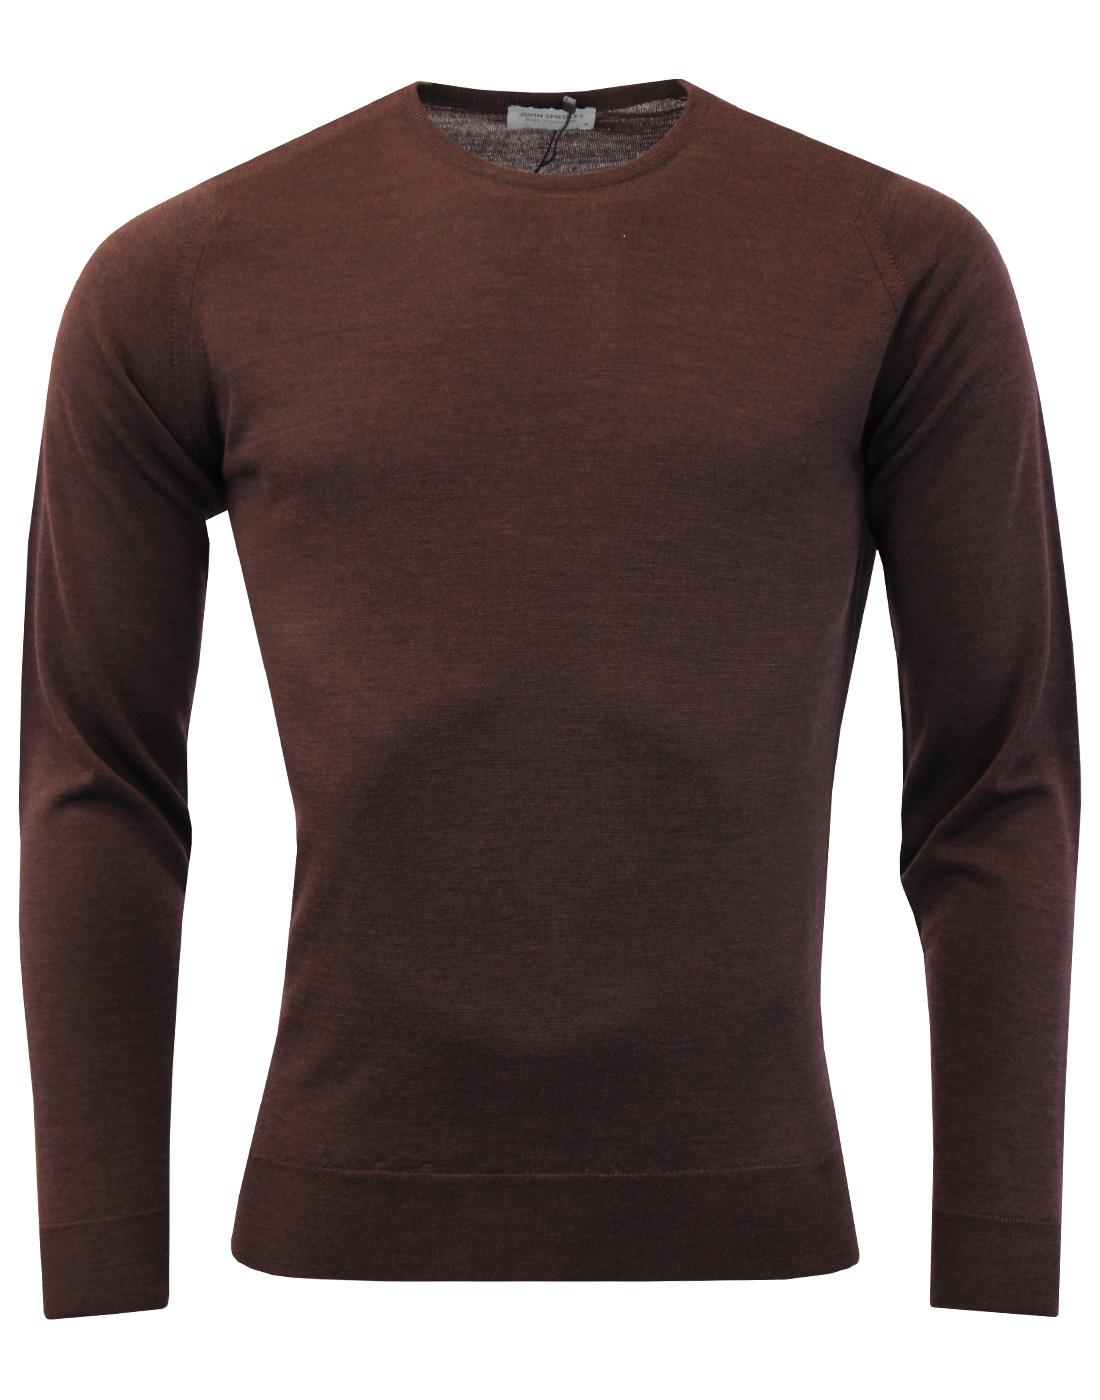 Lundy JOHN SMEDLEY Made in England Crew Jumper CB